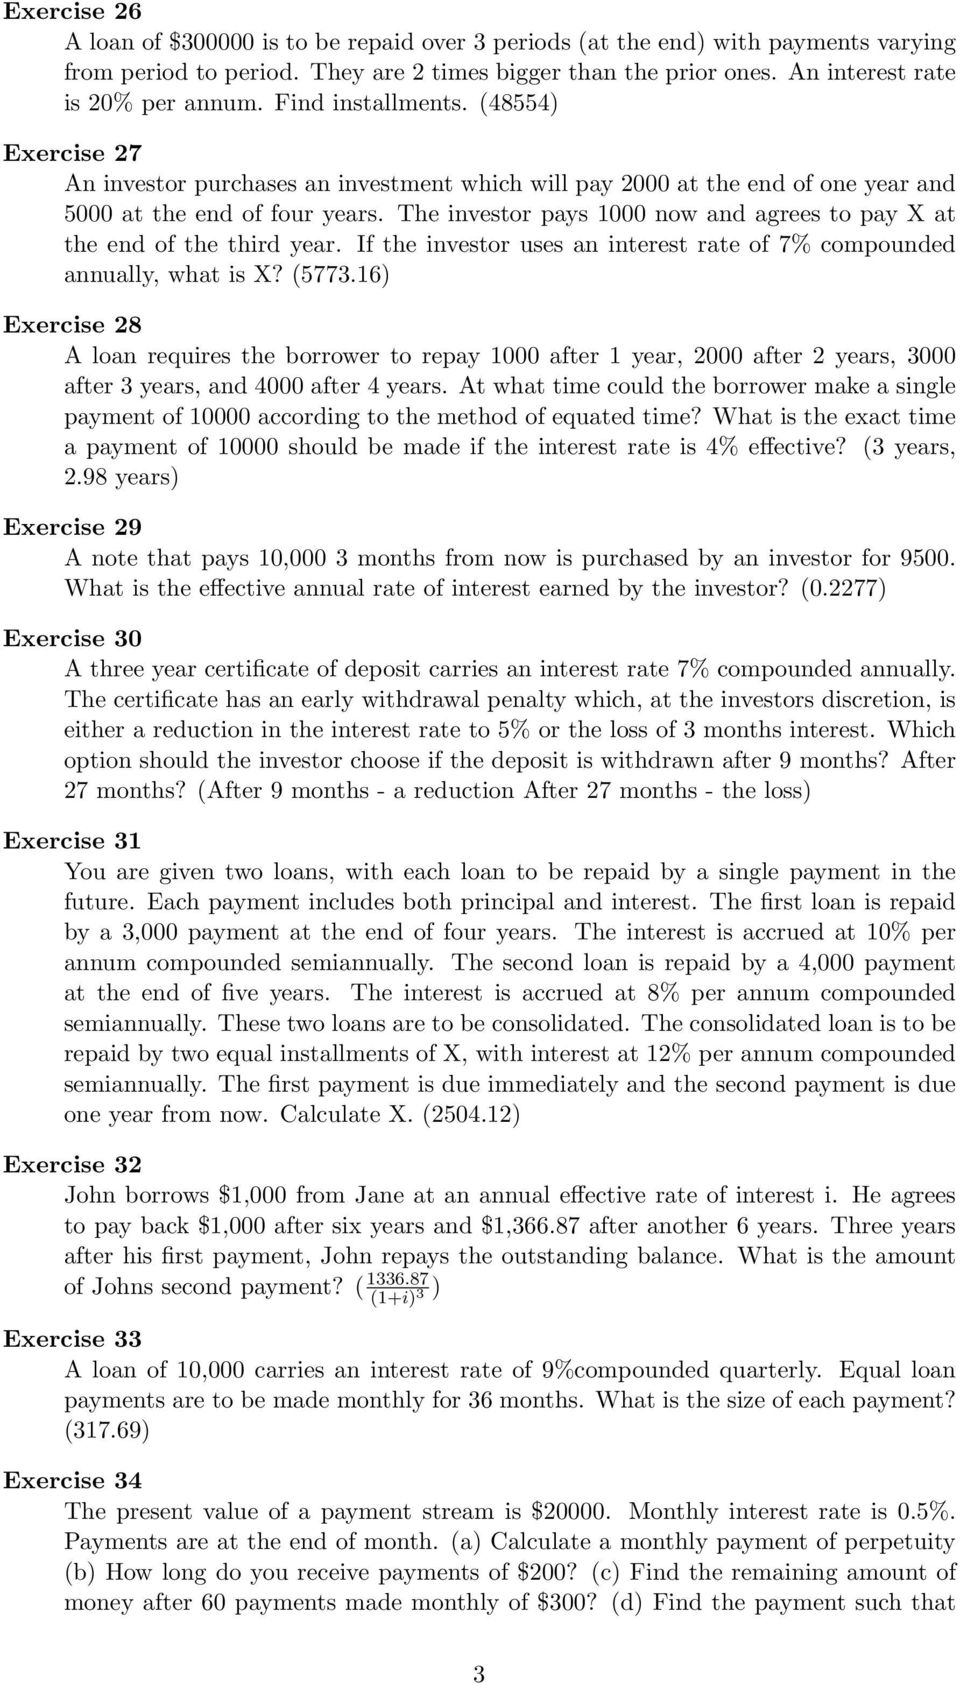 Exercise 6 Find The Annual Interest Rate If The Amount After 6 Years